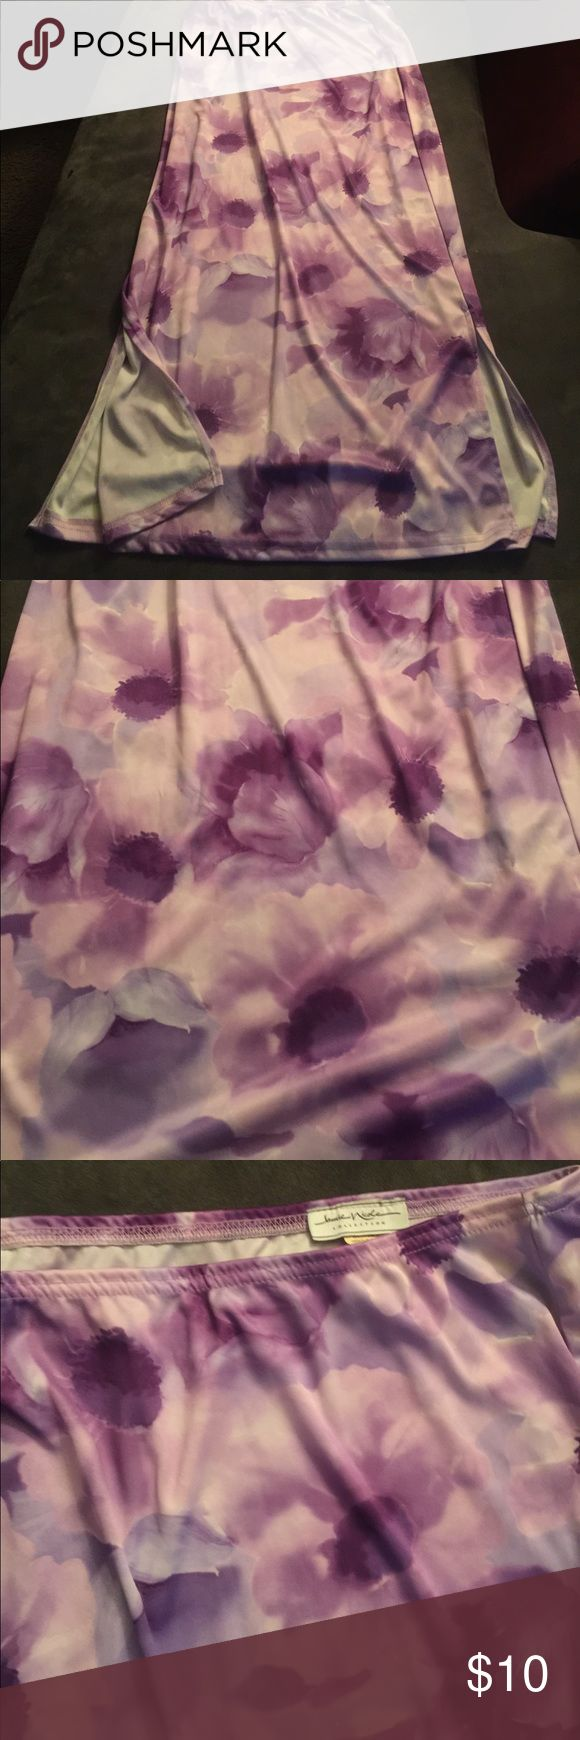 Purple Long Floral Maxi Skirt Summer long Floral Maxi Skirt made of polyester. Elastic waistband, two kick plates on each side.  If you want to feel relaxed and free flowing then this skirt is for you.  Great to wear with your favorite t-shirt. Skirts Maxi